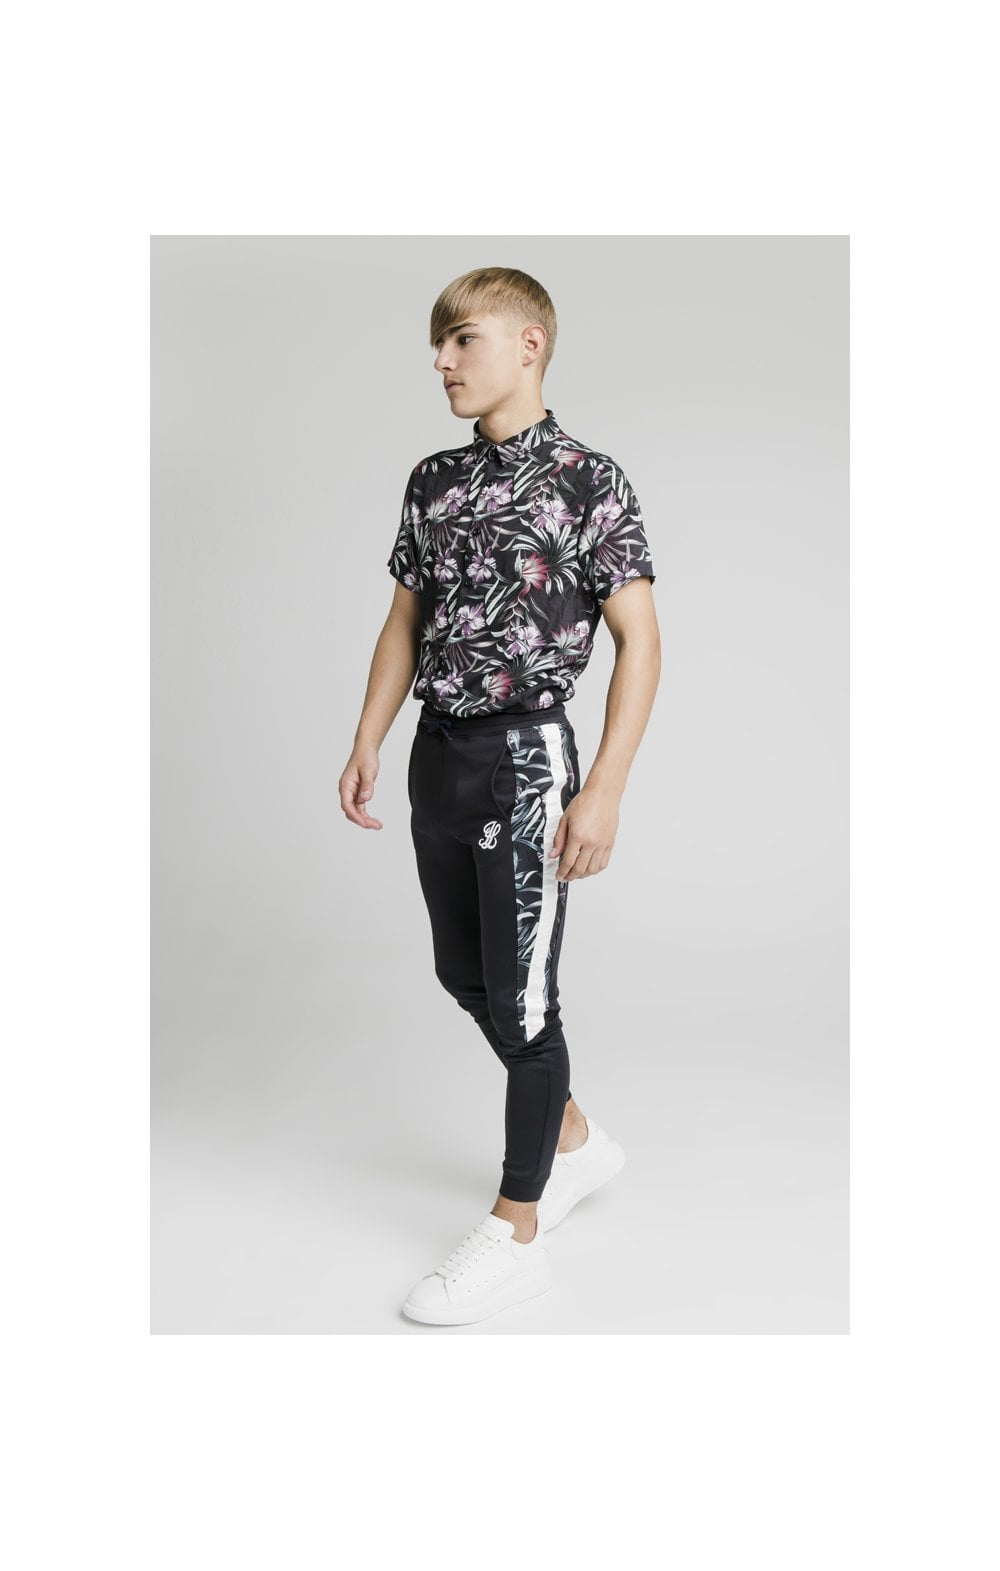 Illusive London Dark Tropical Tape Pants - Navy (4)